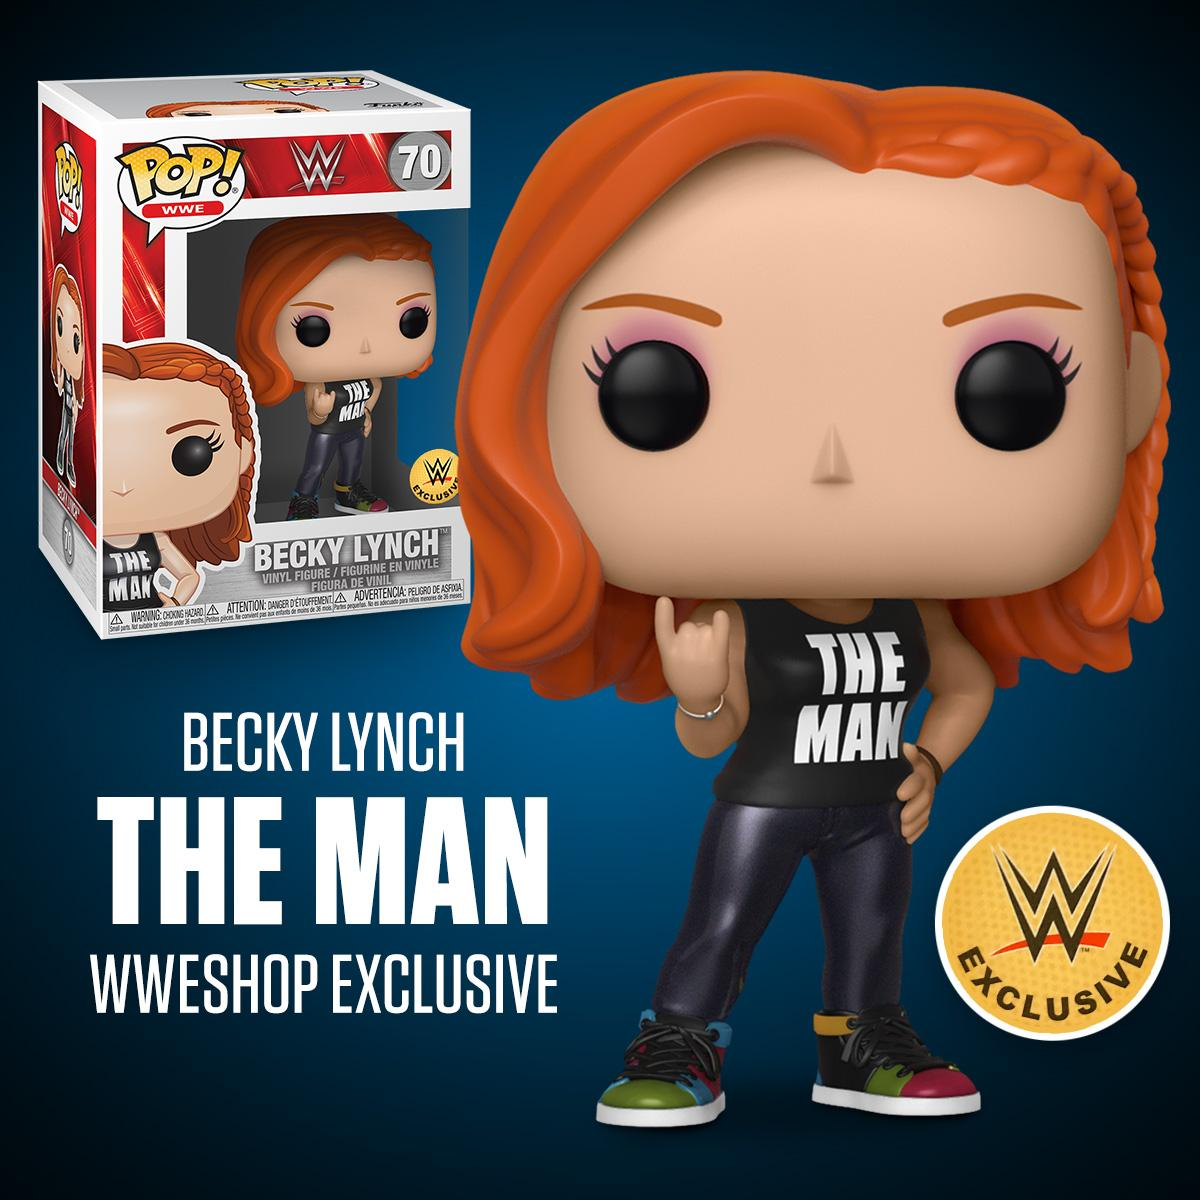 @WWEShop's photo on Becky Lynch